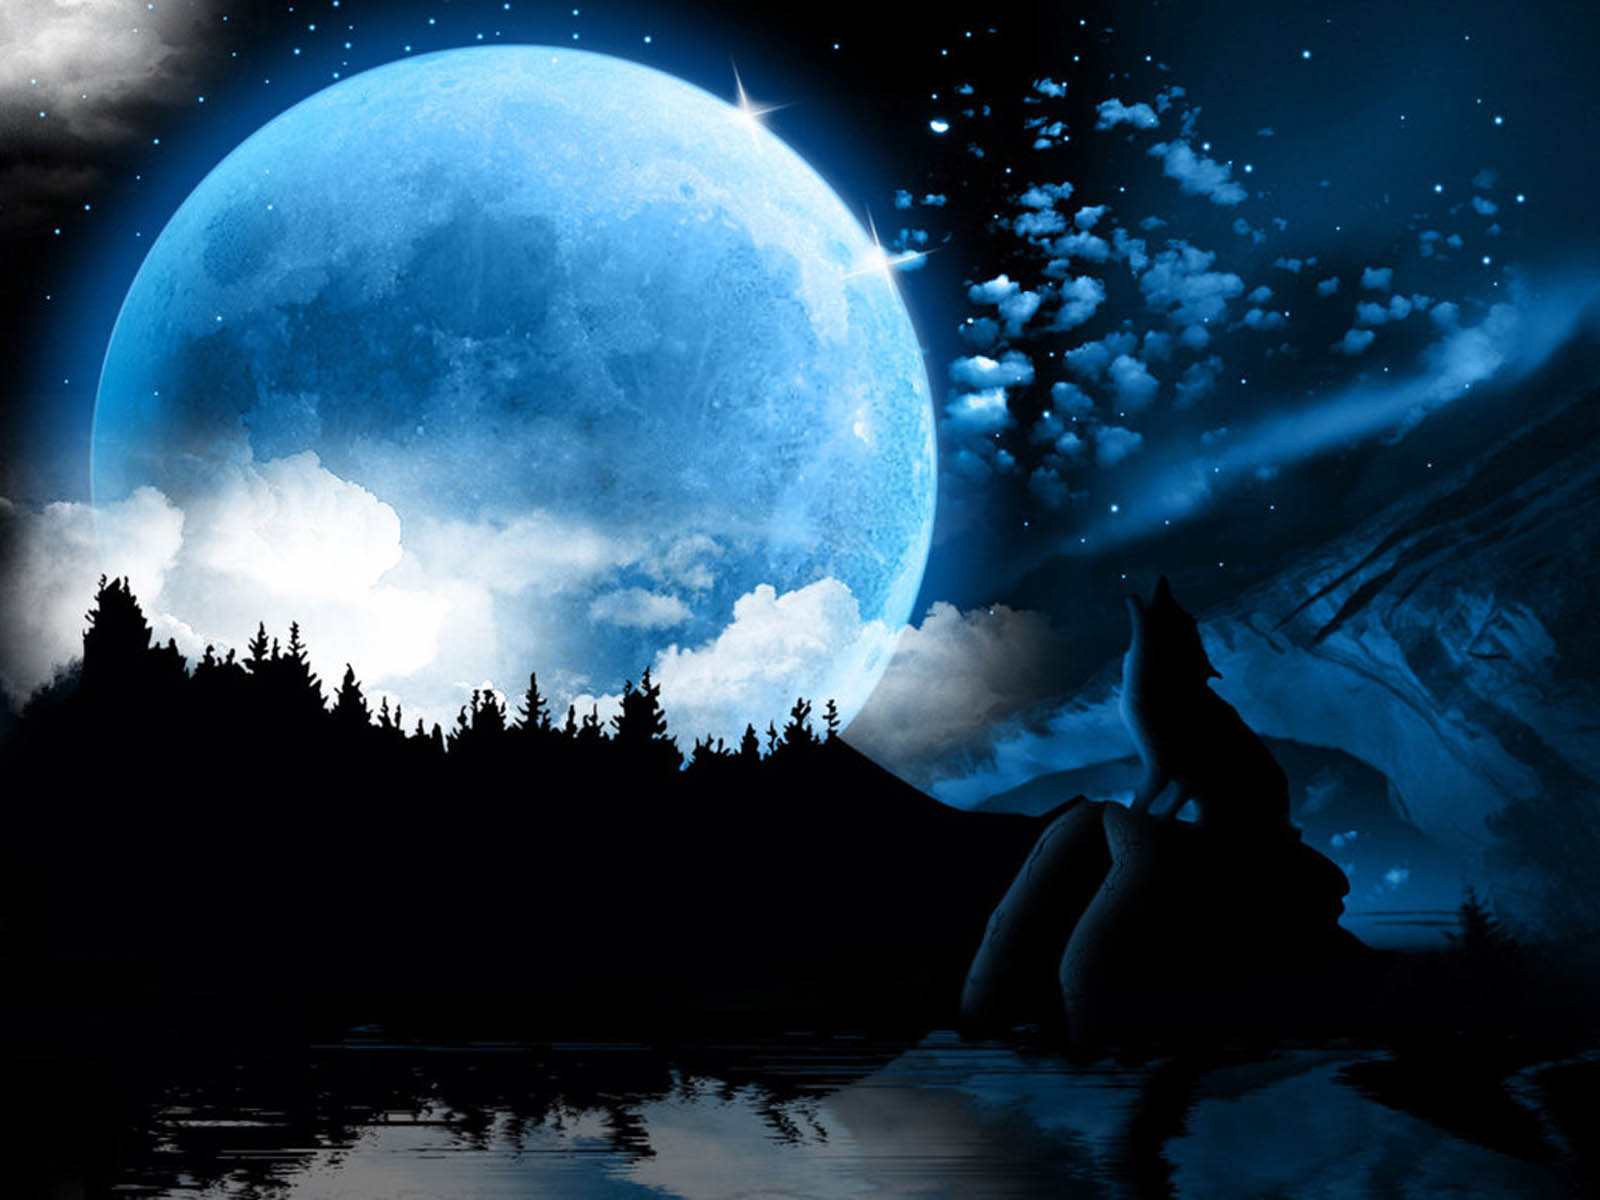 a gift of moonlight wallpaper - photo #34